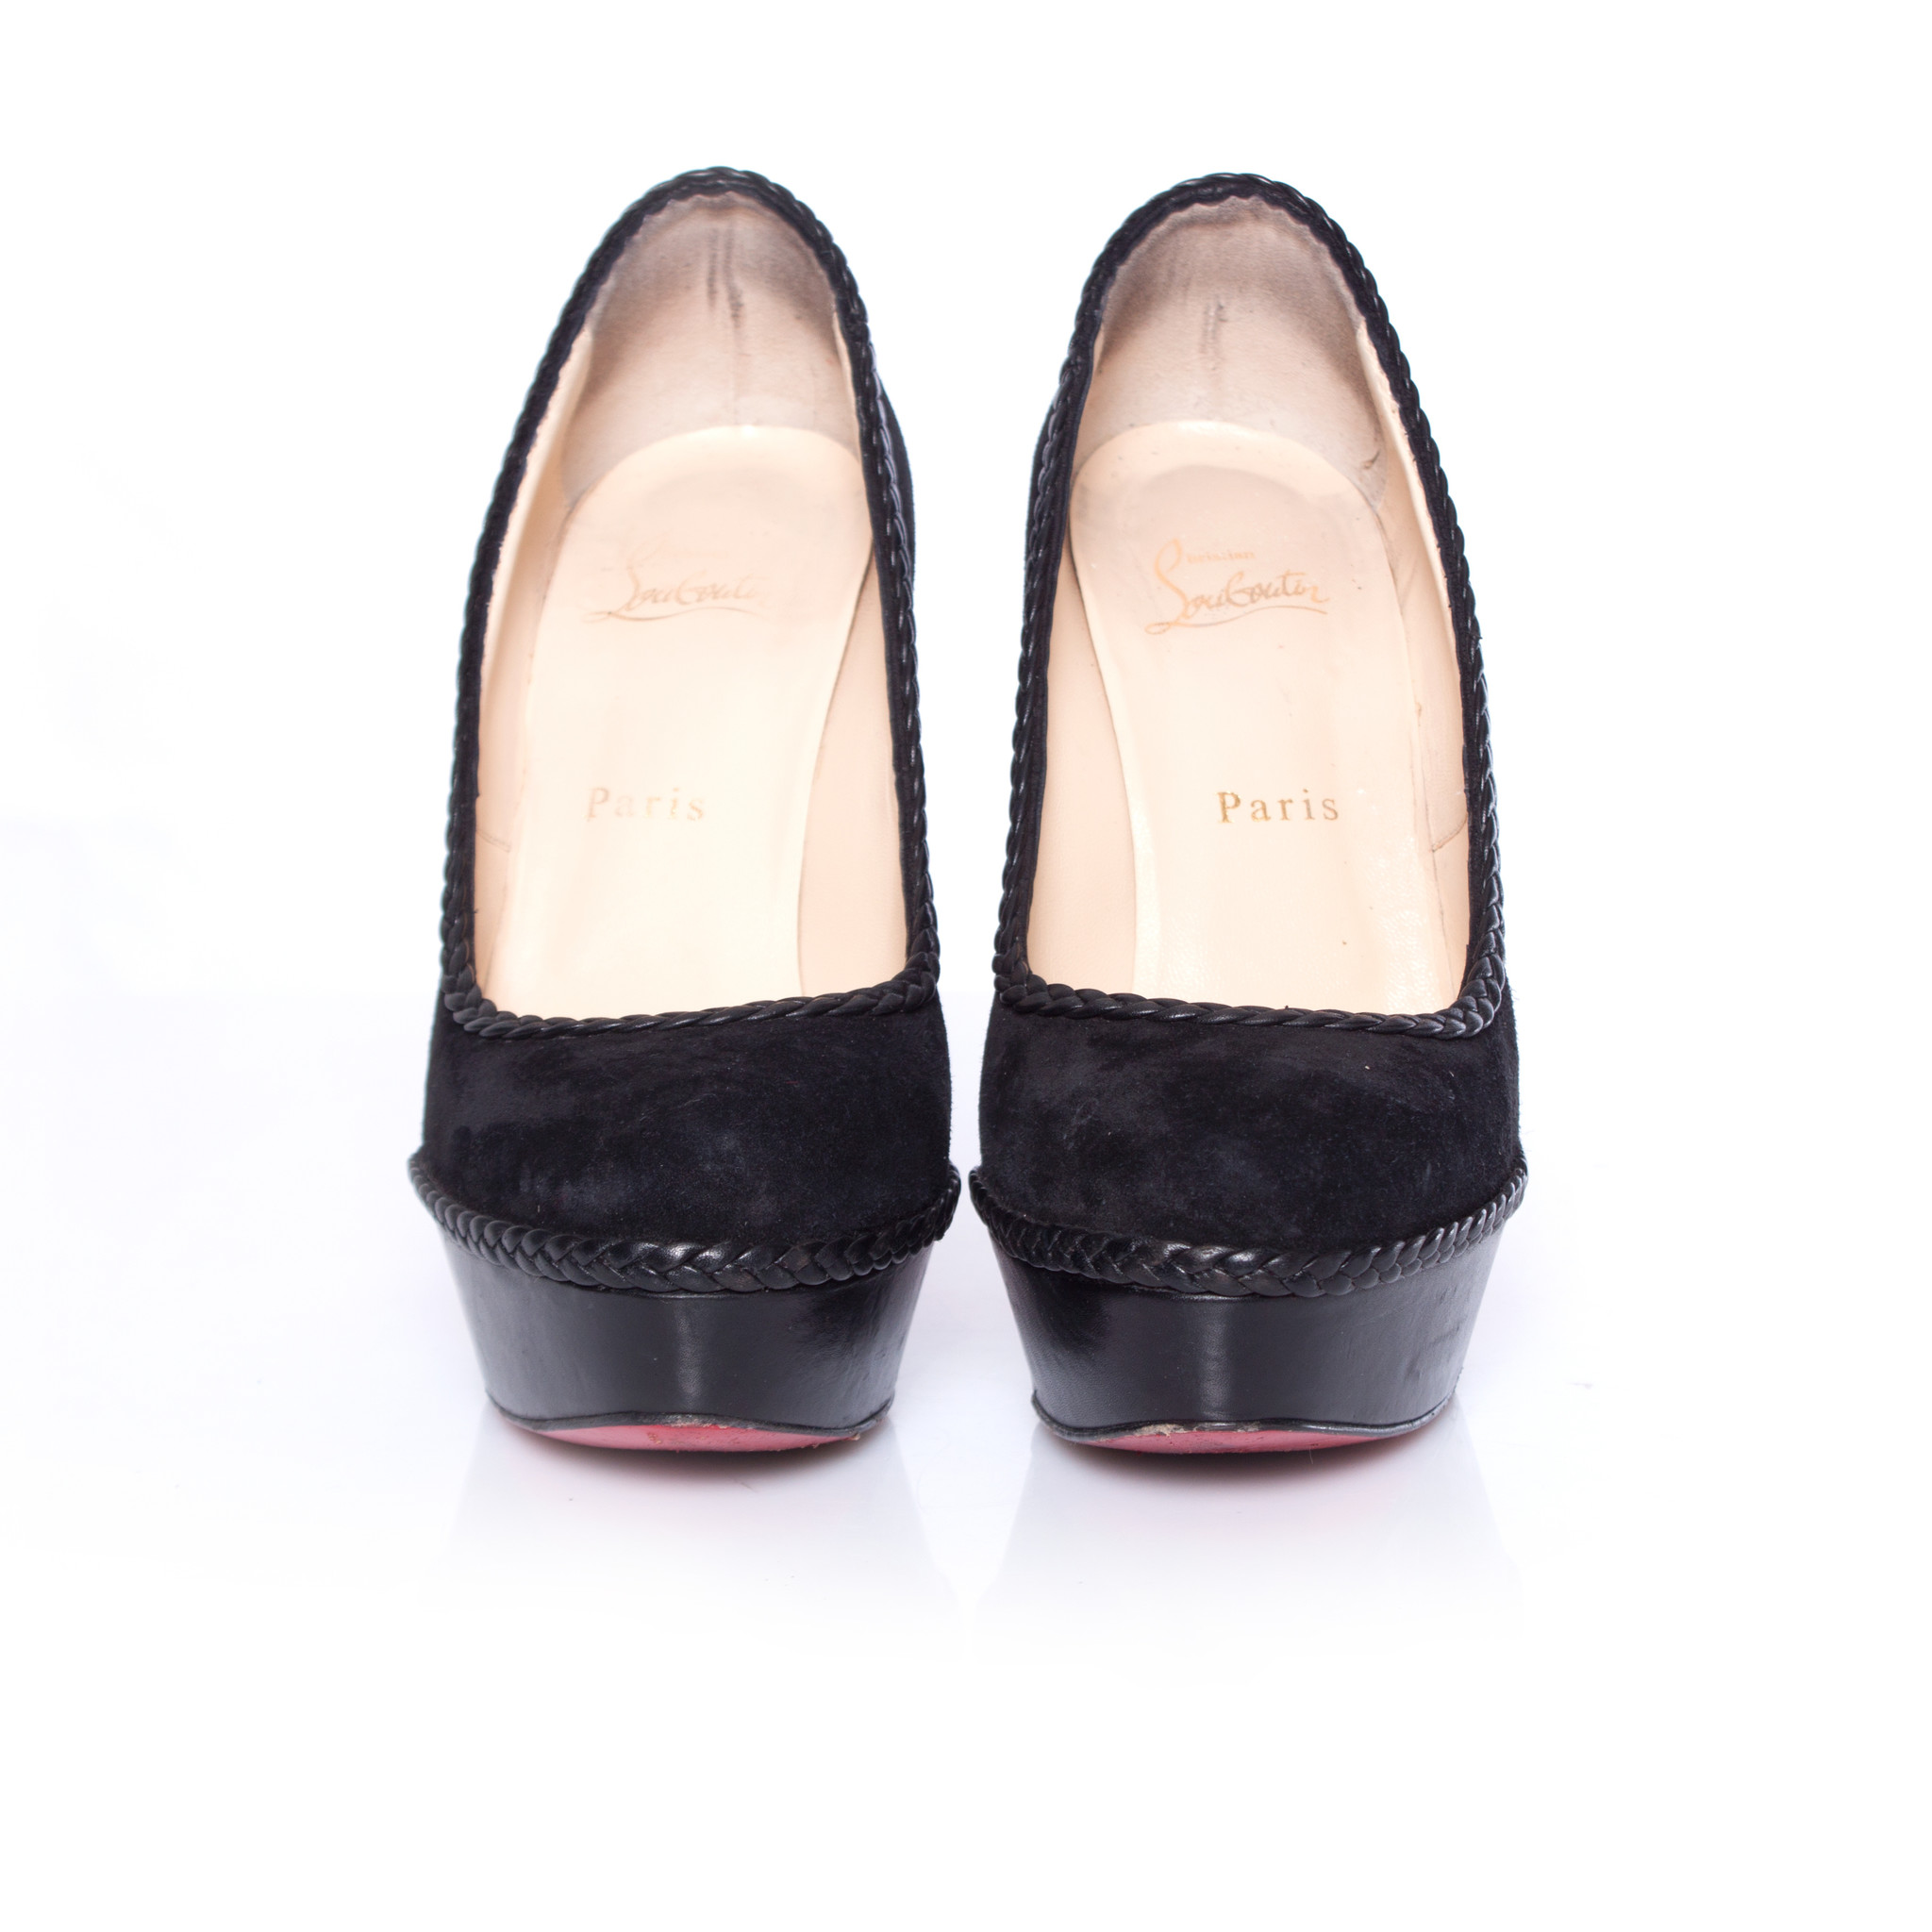 official photos f60bf e0d2e Christian Louboutin, Black leather/suede braided Vizir pumps in size 38.5.